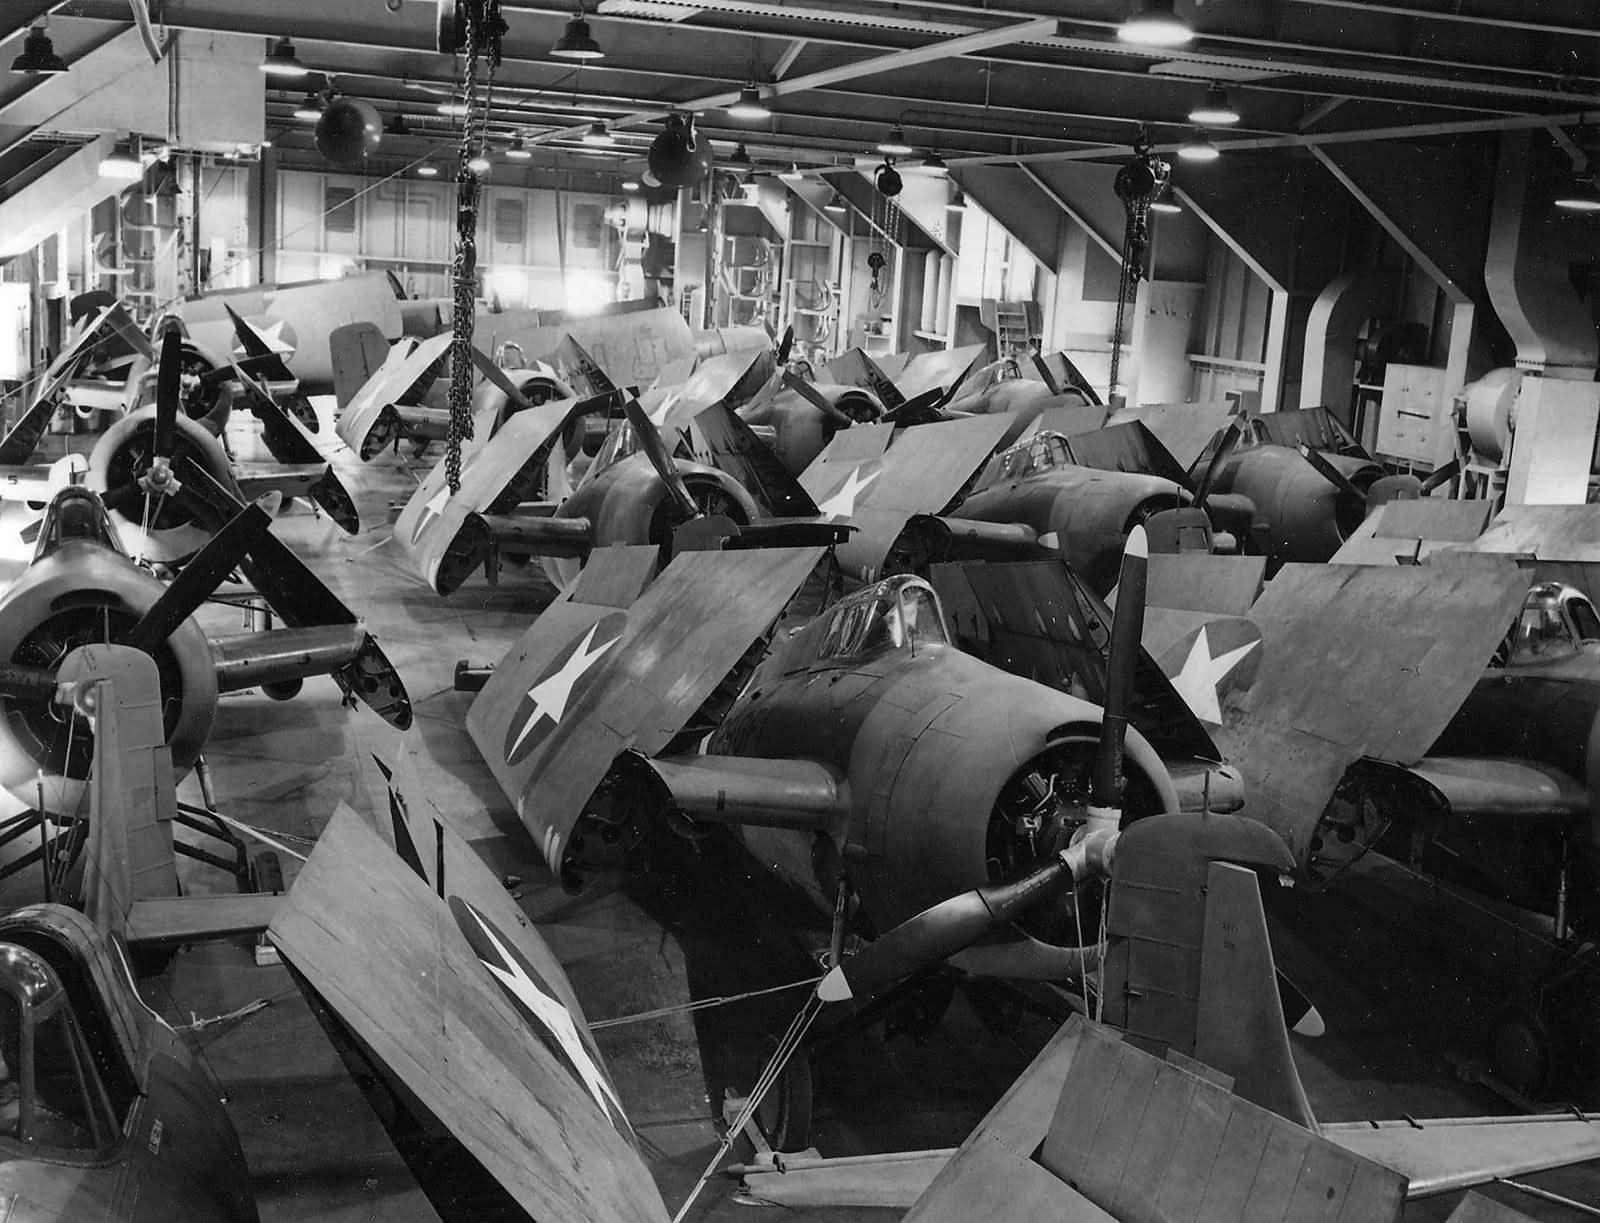 F4F-4_Wildcats_packed_on_the_hangar_deck_of_the_USS_Charger_AVG-30_2_October_1942